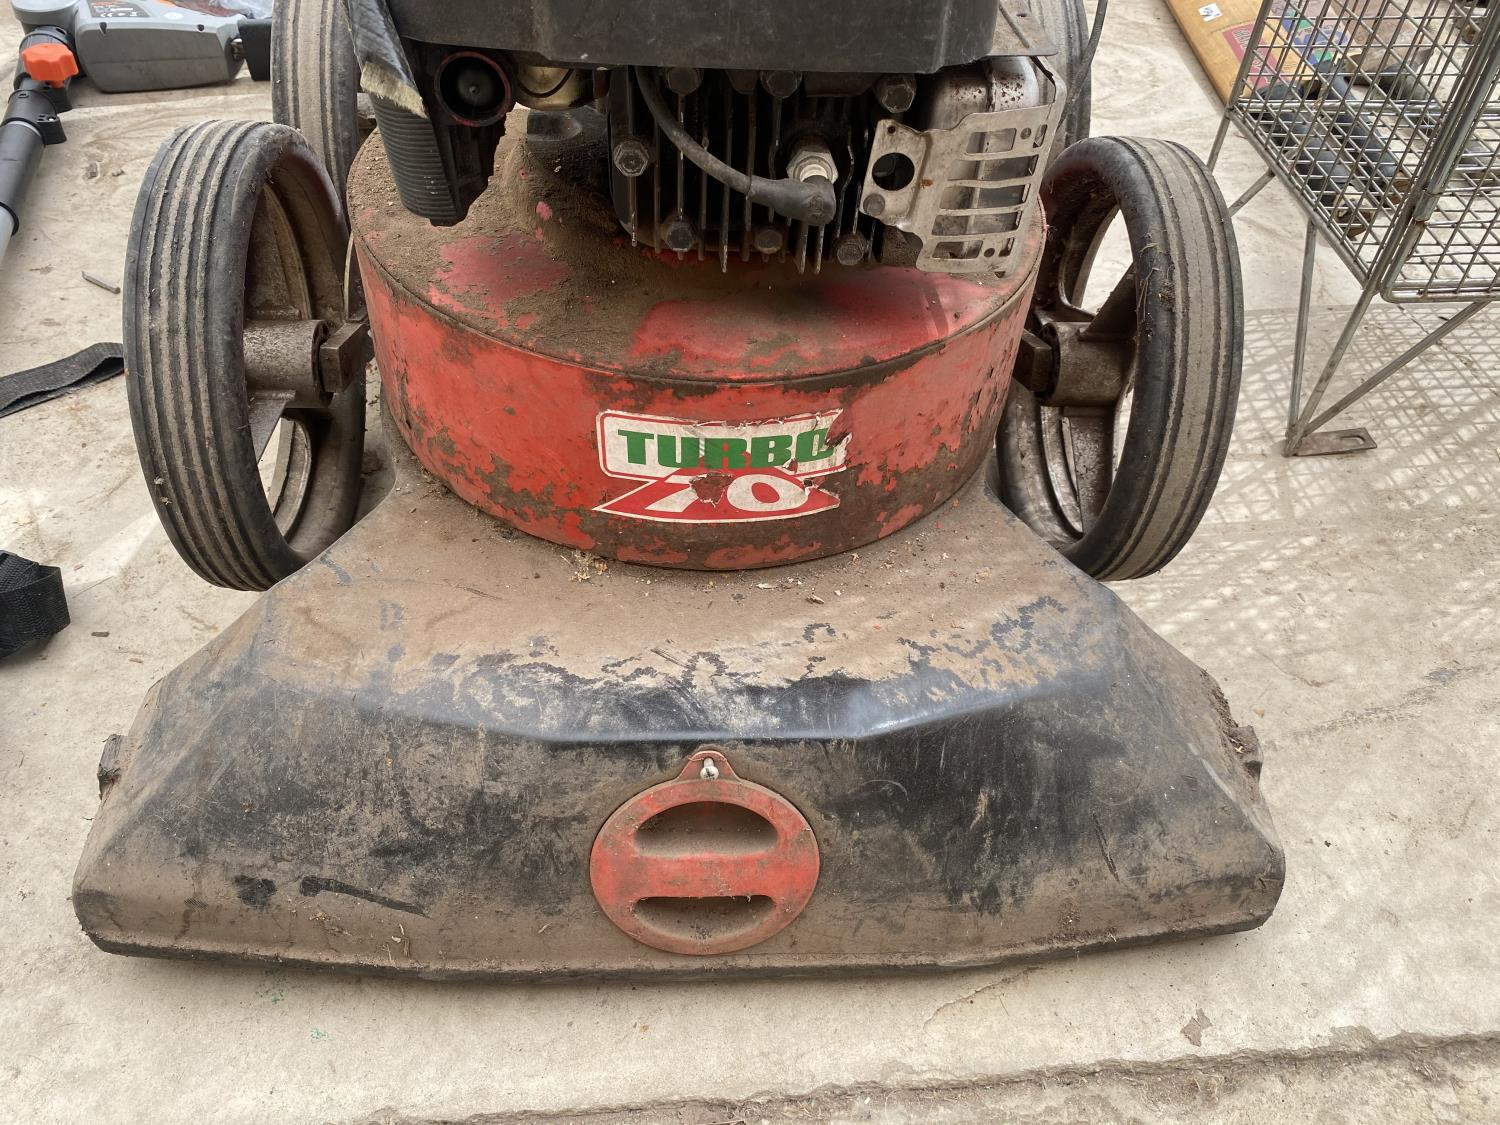 AN IBEA GARDEN HOOVER WITH TURBO 70 PETROL ENIGINE - Image 2 of 5